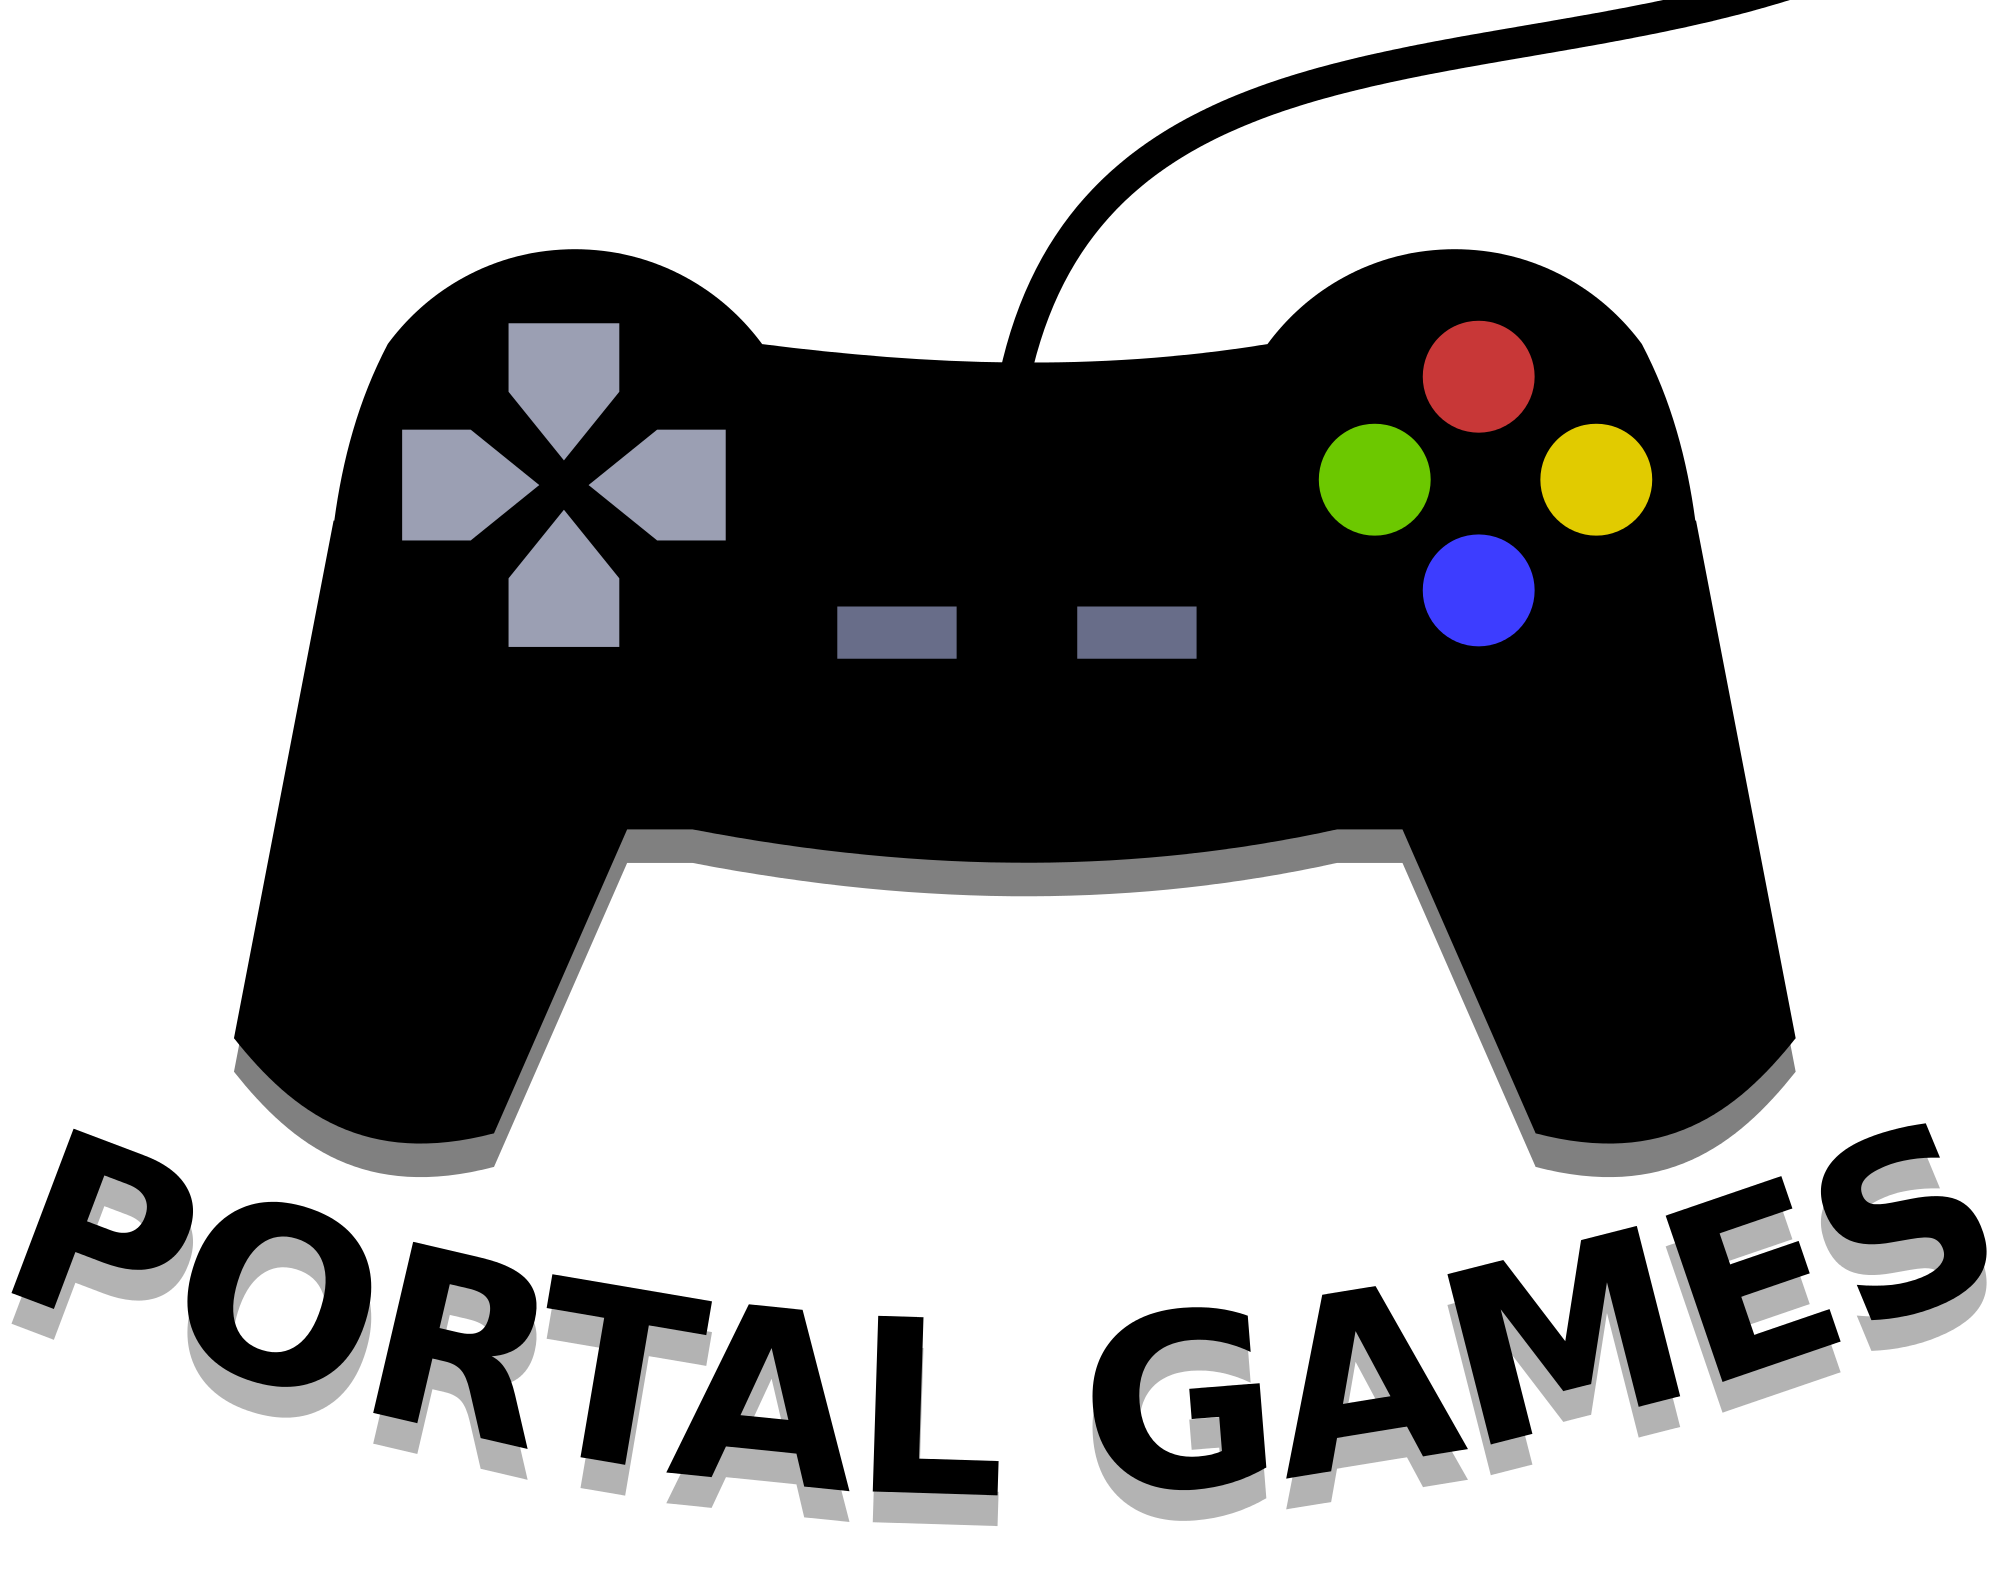 Portal (Video Game) clipart #17, Download drawings